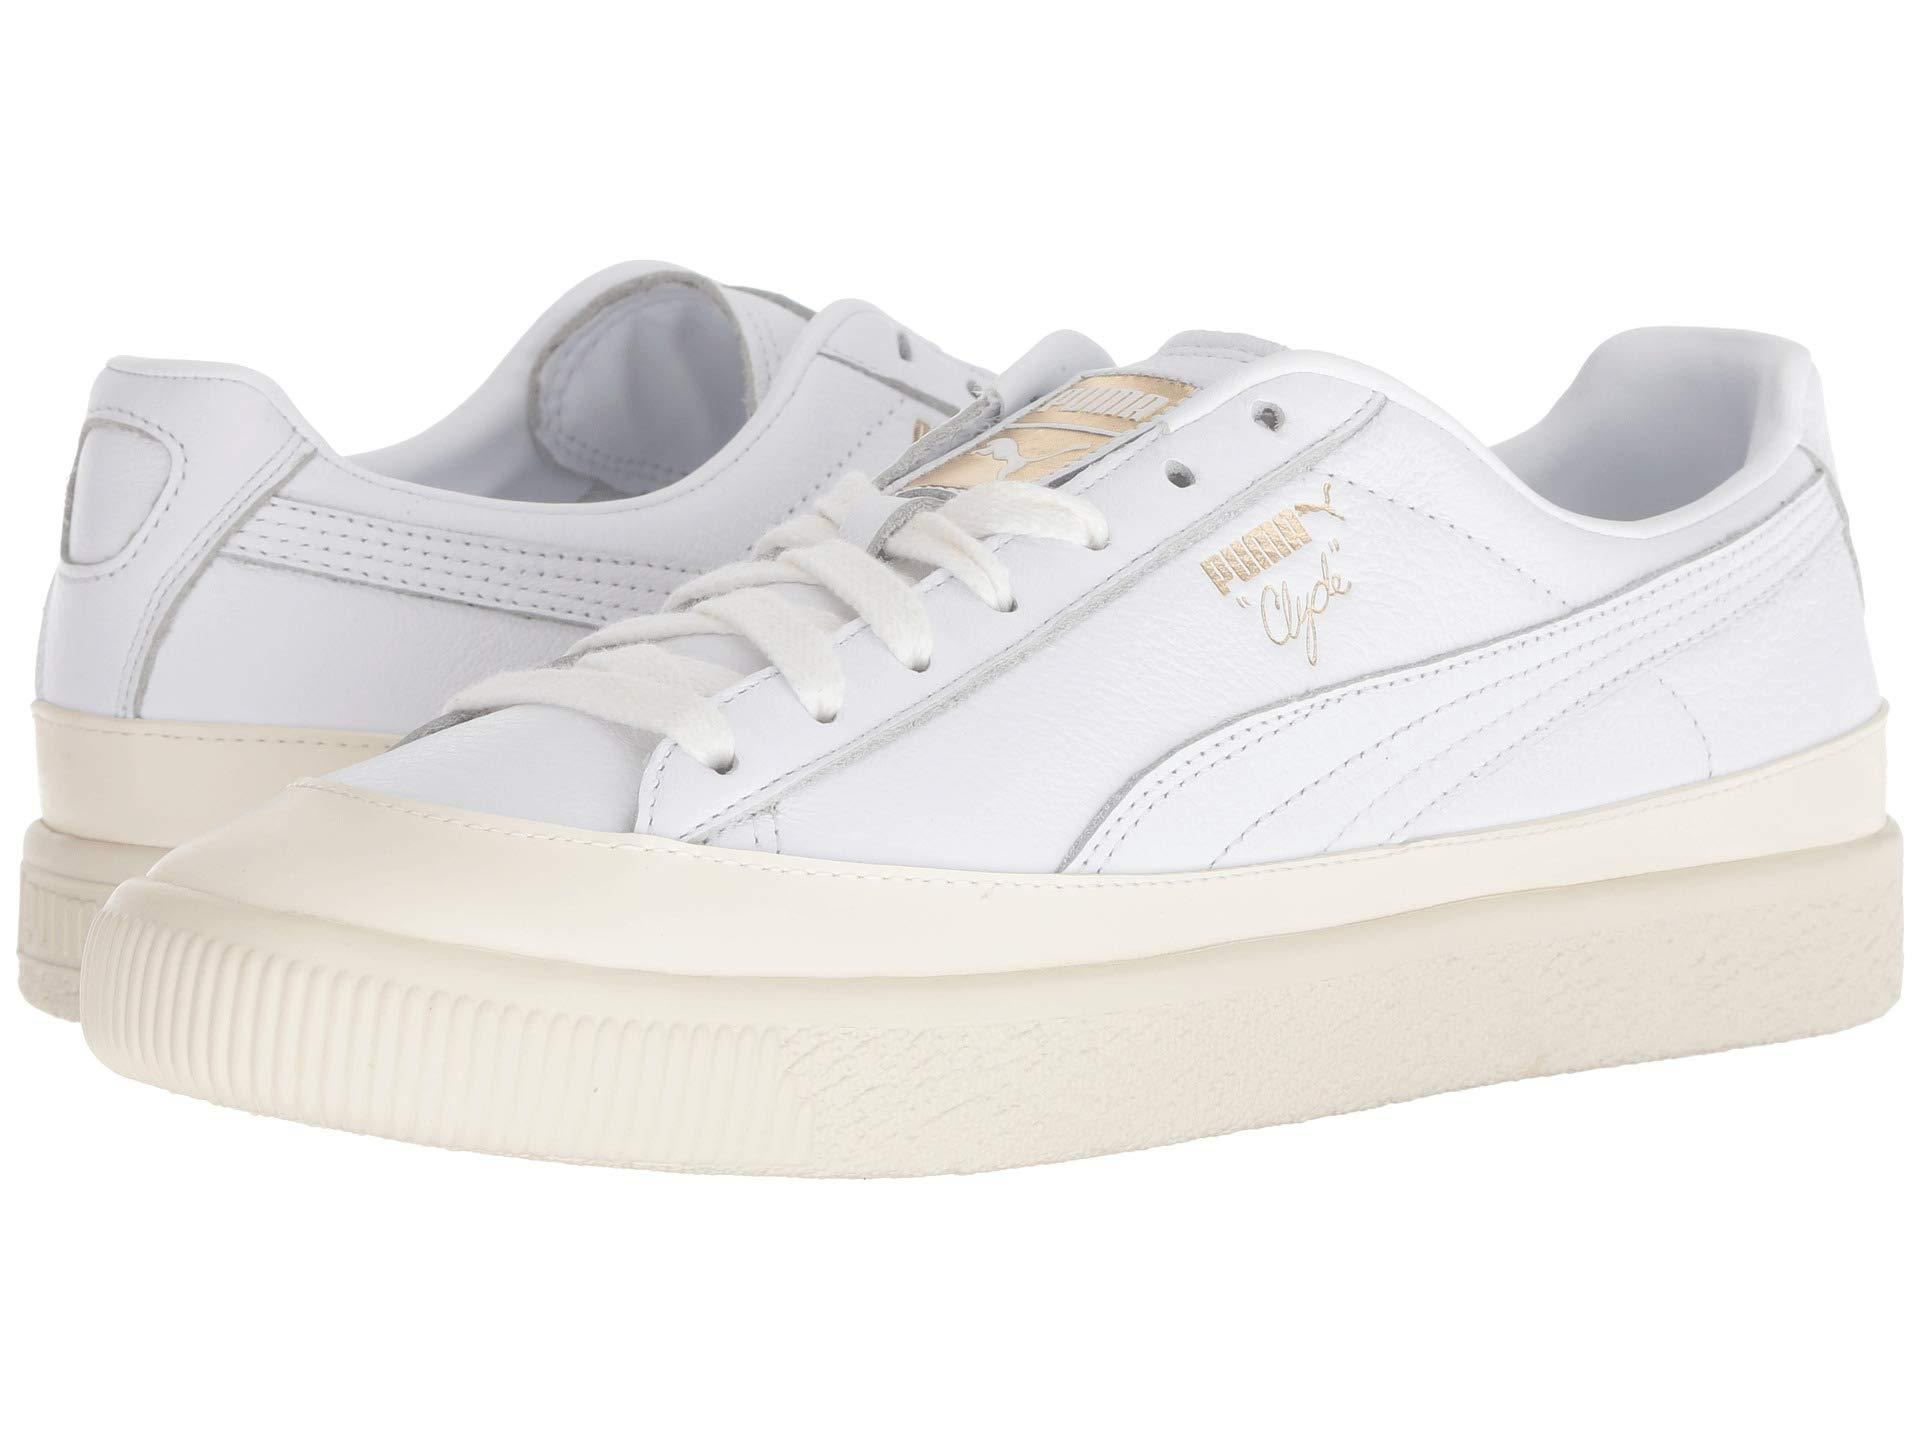 95aafacf8ecefa Lyst - PUMA Clyde Rubber Toe Leather in White for Men - Save 13%